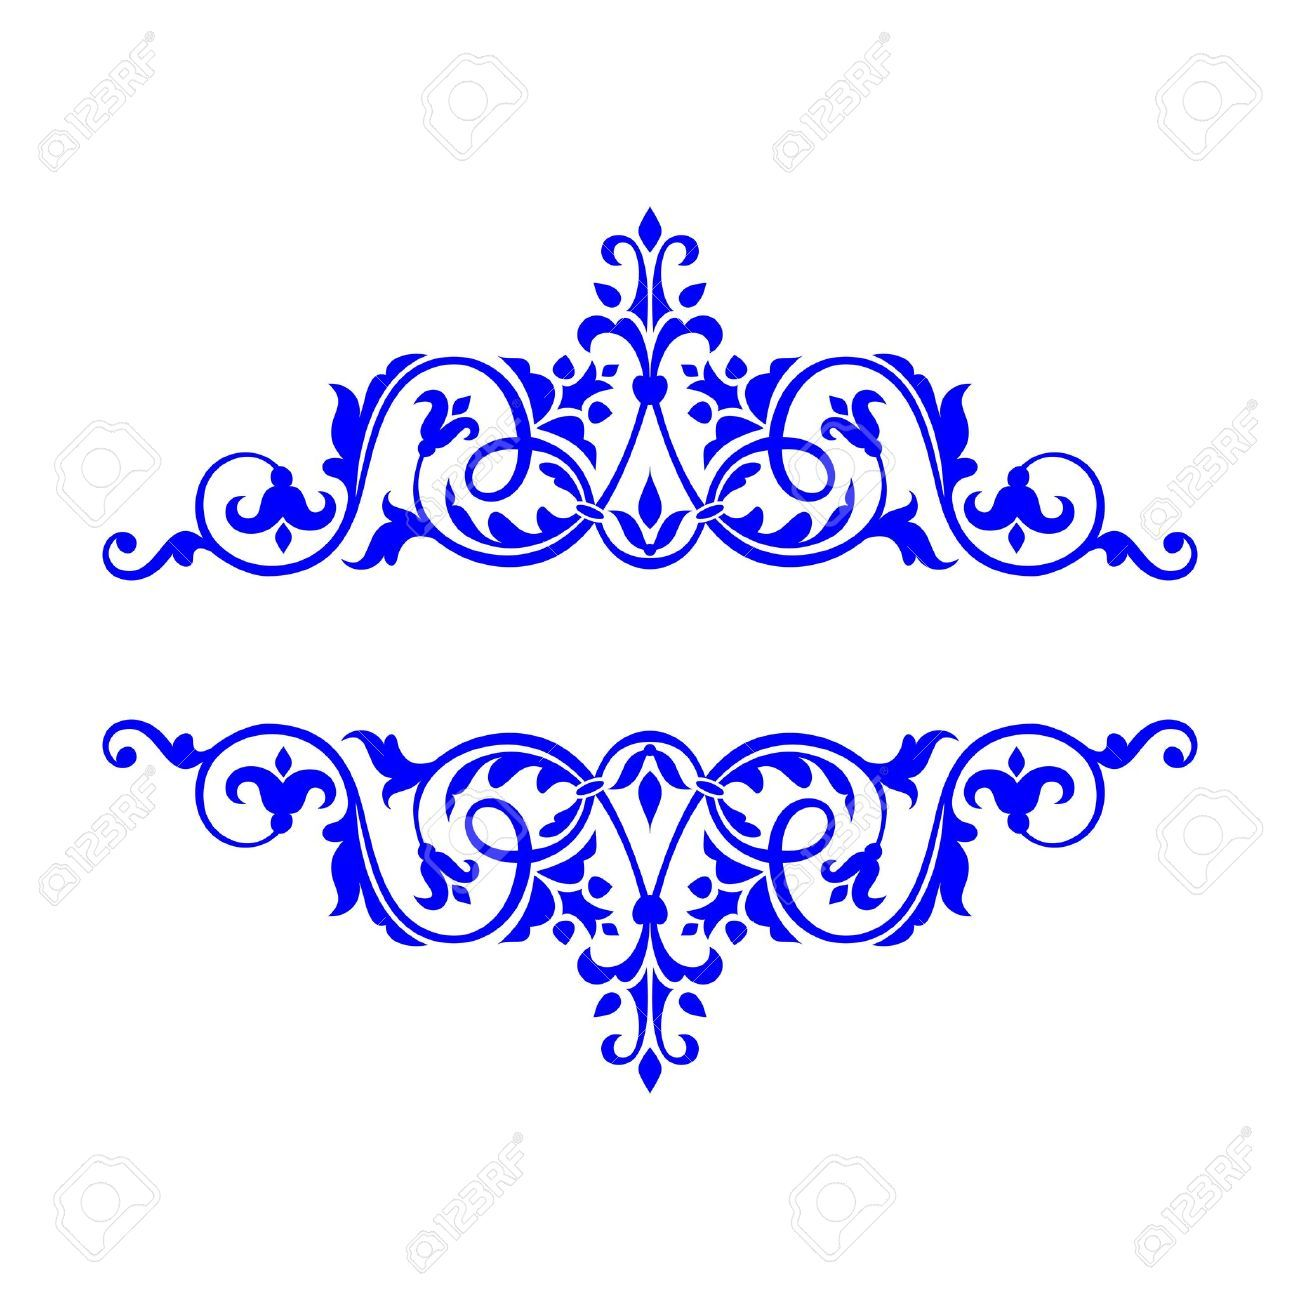 Engagement clipart royal blue wedding. Image result for scroll